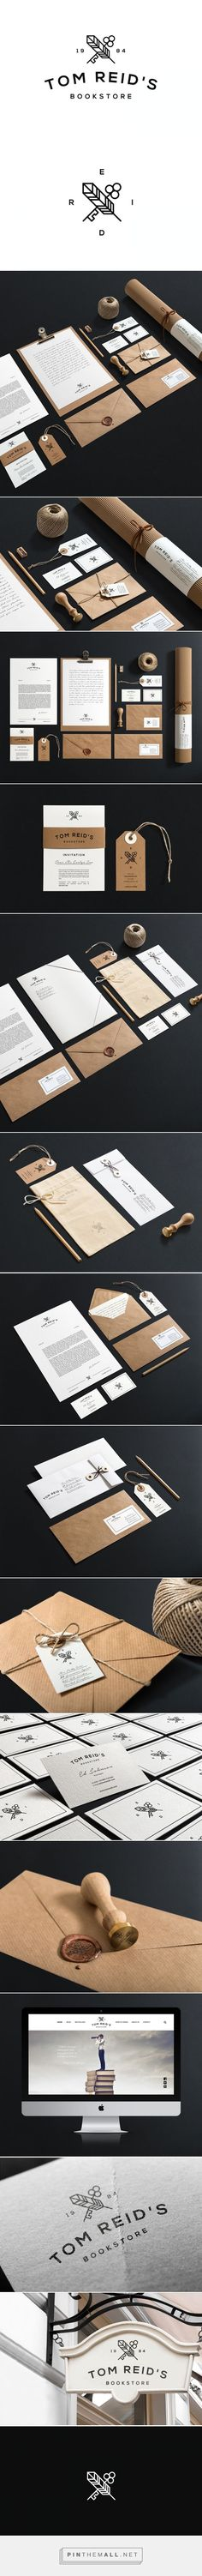 Tom Reid's Bookstore on Behance branding stationary corporate identity label business card letterhead enveloppe craftpaper logo icon stamp wax minimalistic graphic design